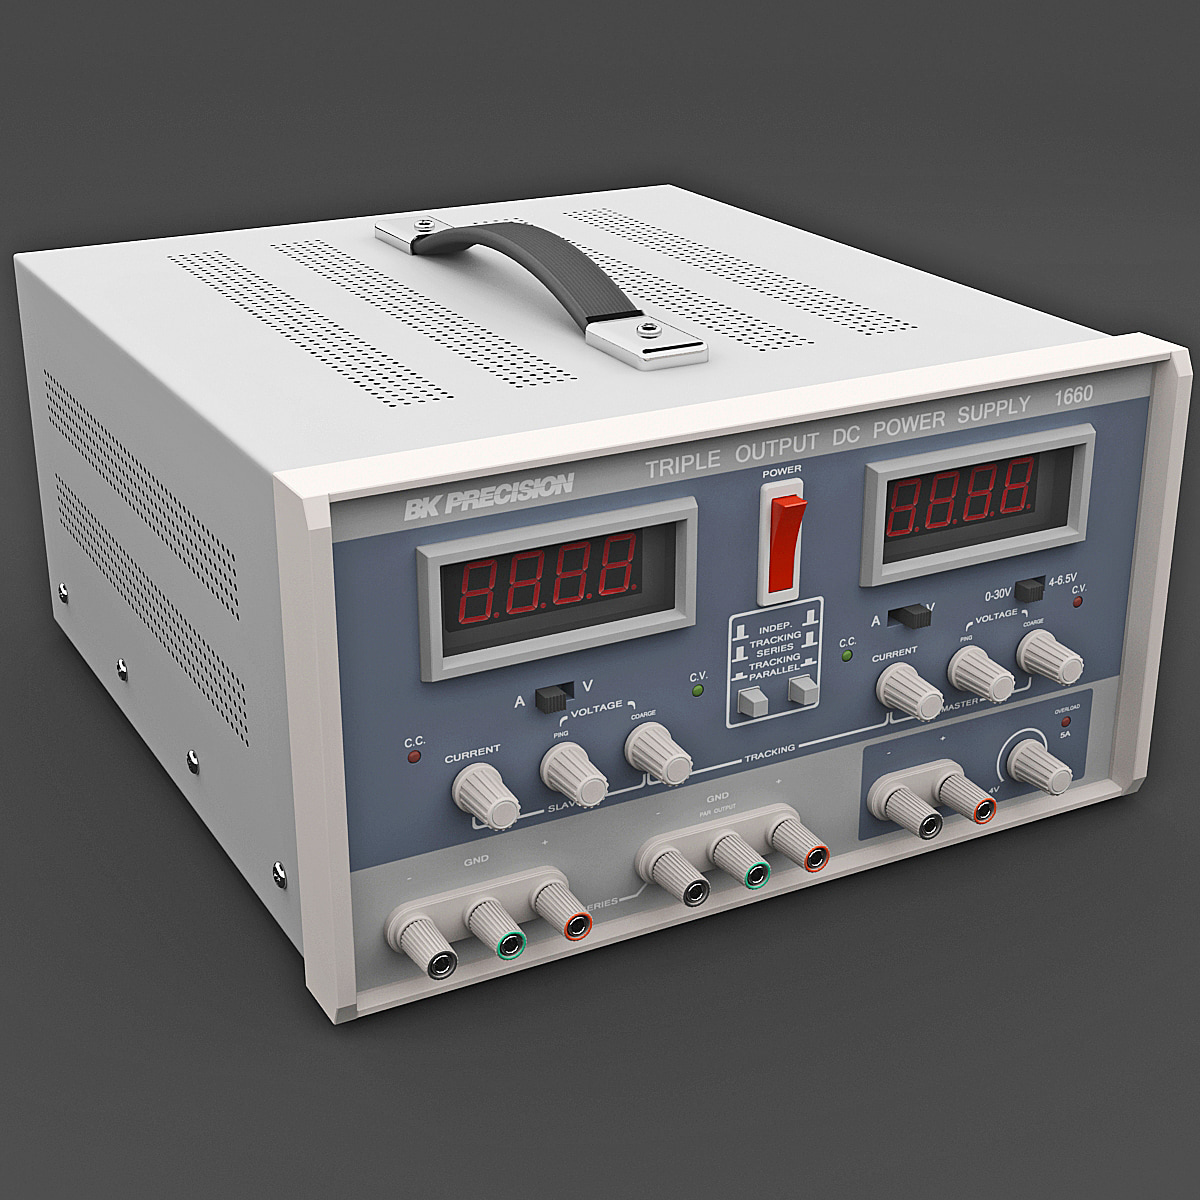 BK_Precision_1660_Power_Supply_001.jpg